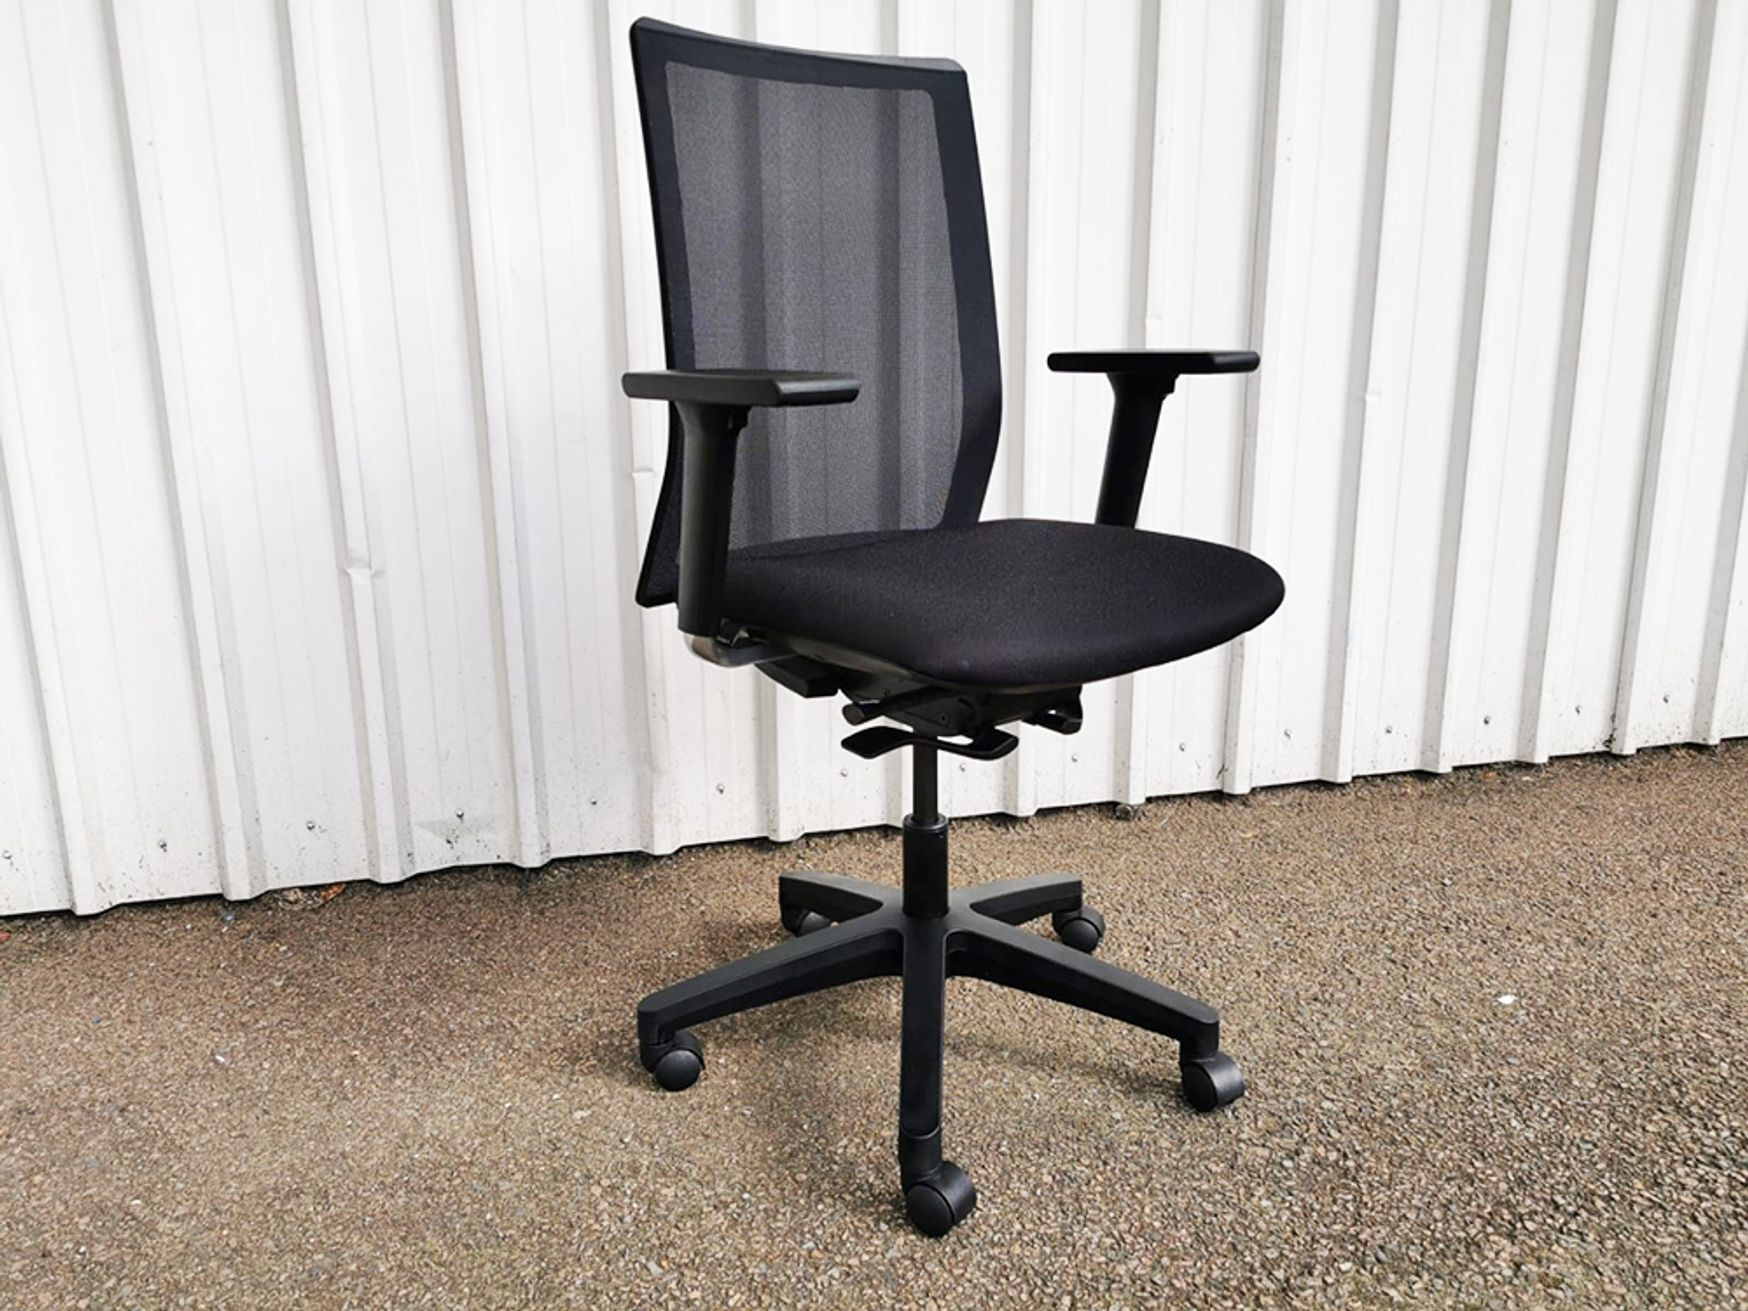 Used Forma 5 'Sentis' Mesh Back Operator Chairs